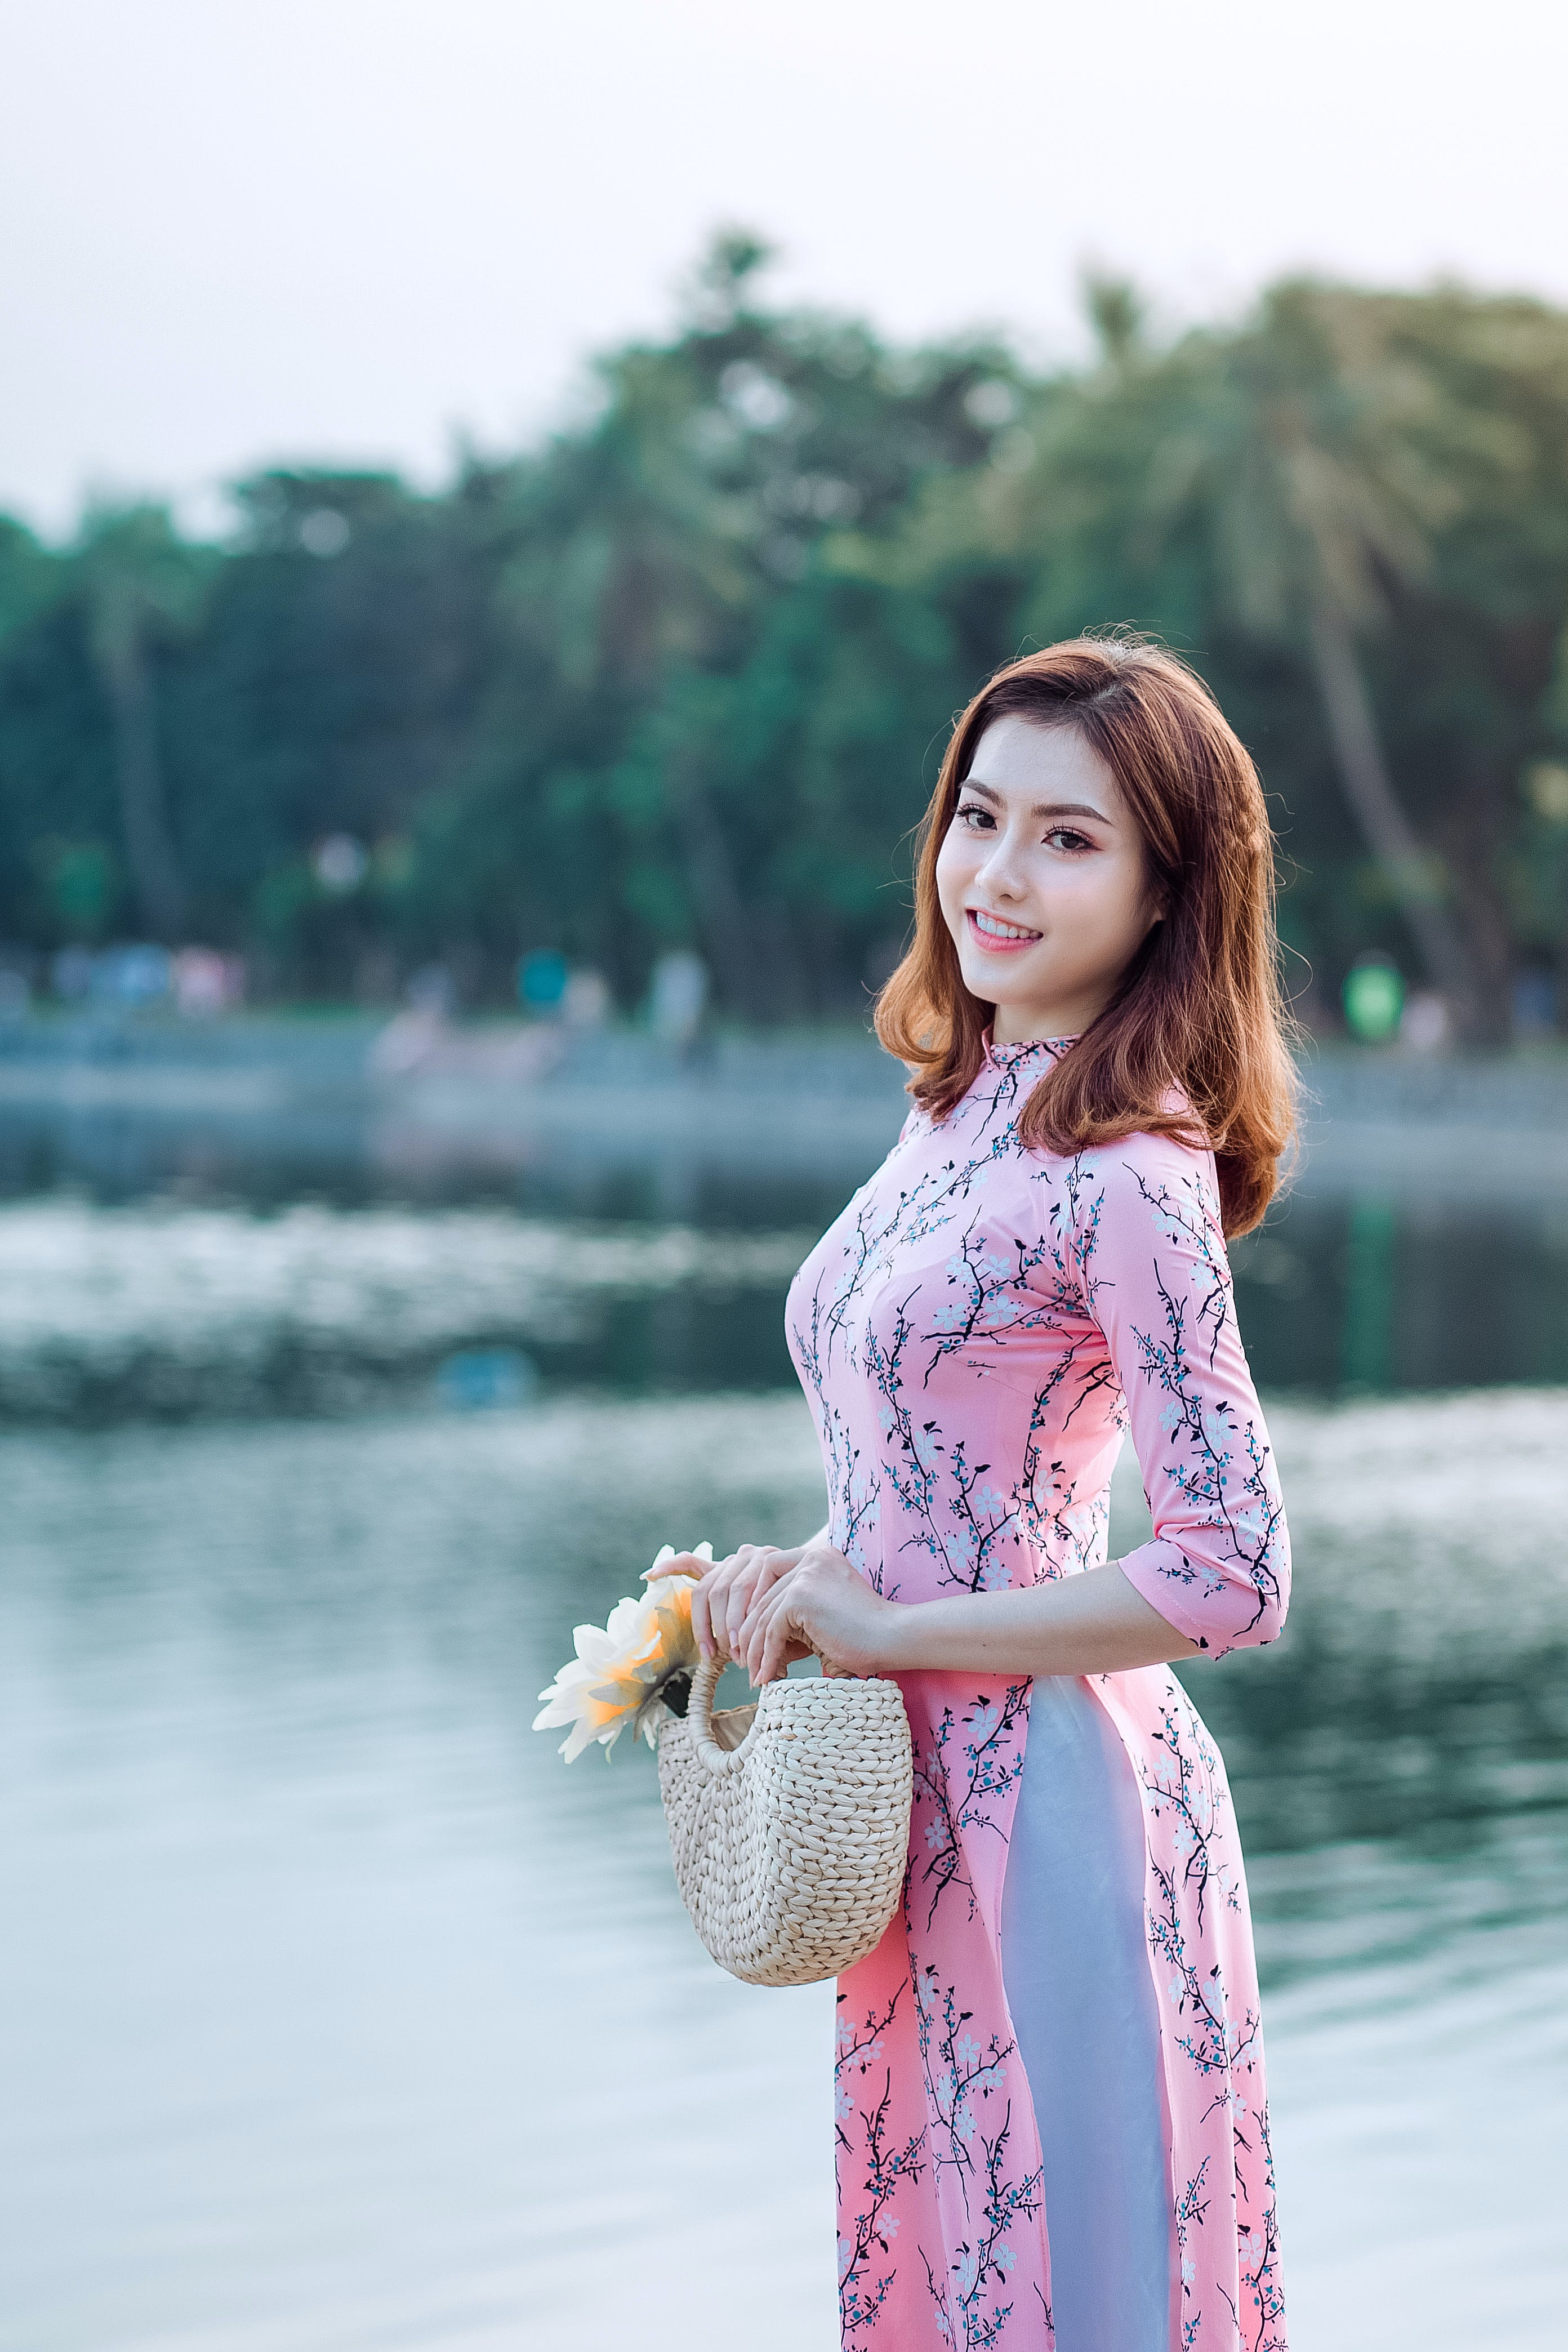 Woman in Pink and Blue Floral 3/4-sleeved Dress